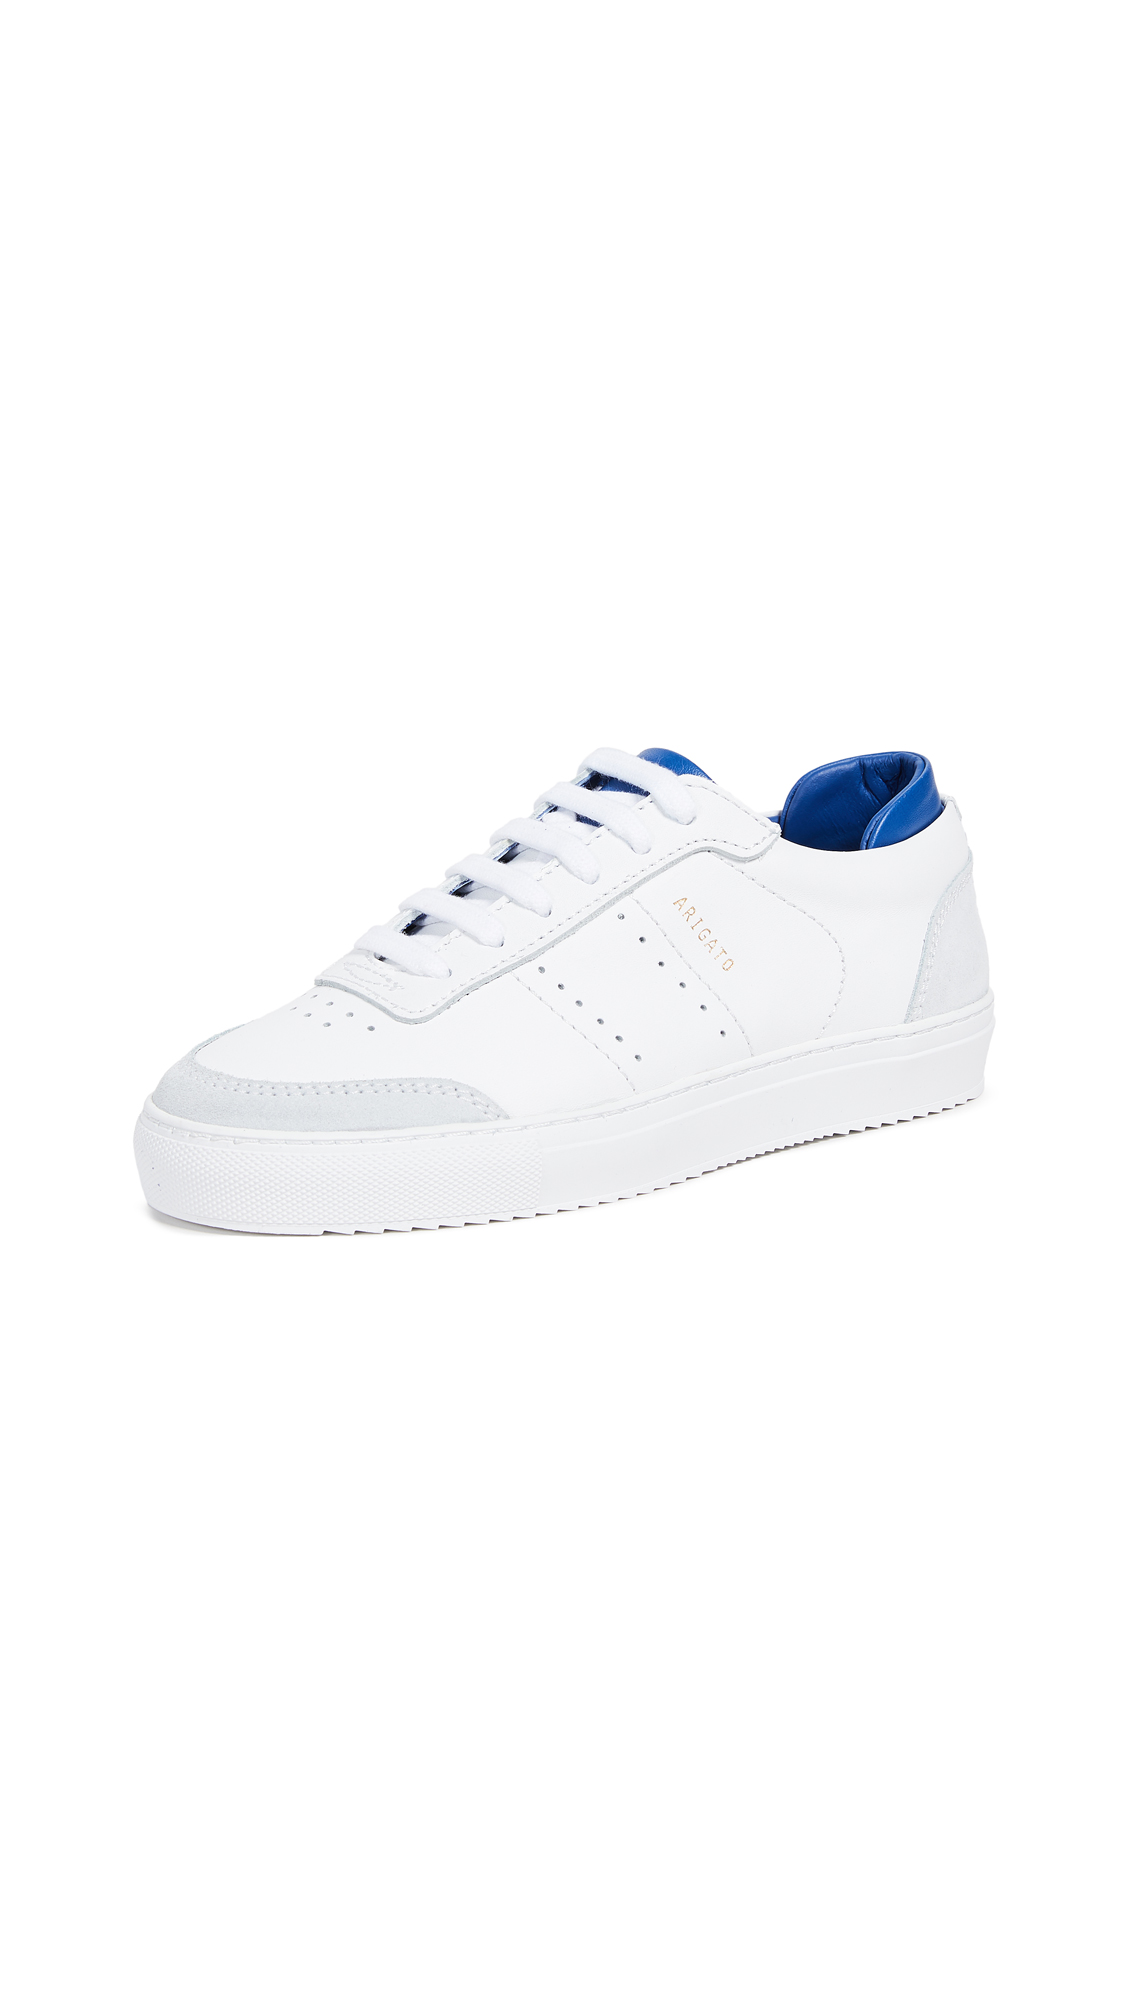 Axel Arigato Dunk Sneakers - White/Blue